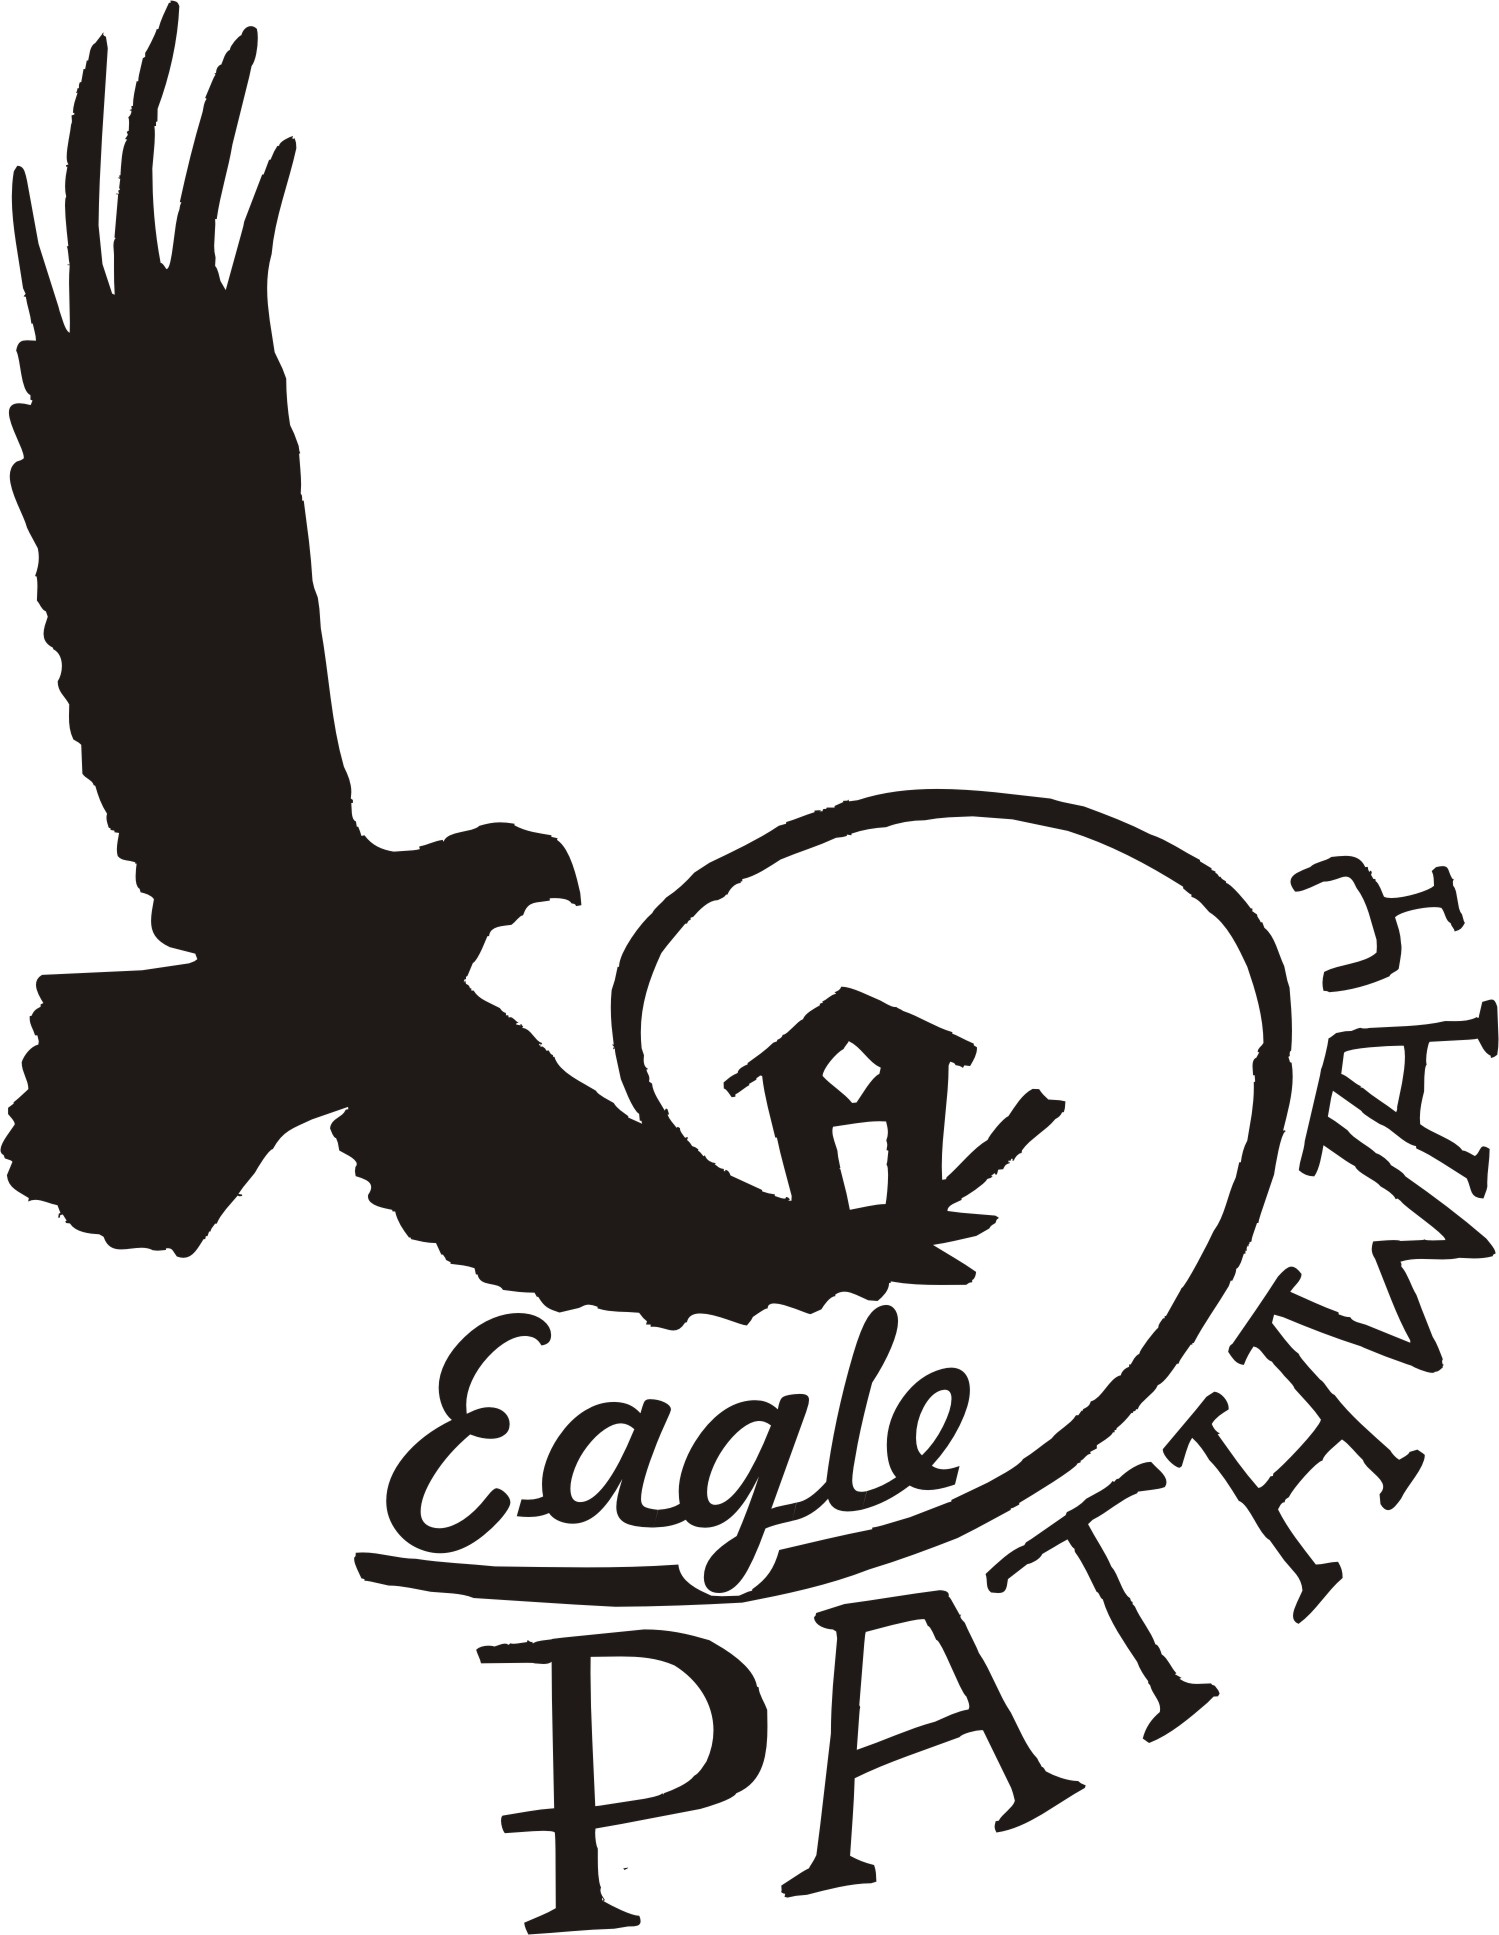 christian single women in eagle Thanksgiving if tonight you were to die our pride and joy if i had wings like an eagle love is a person its me again lord  poems for christian women.